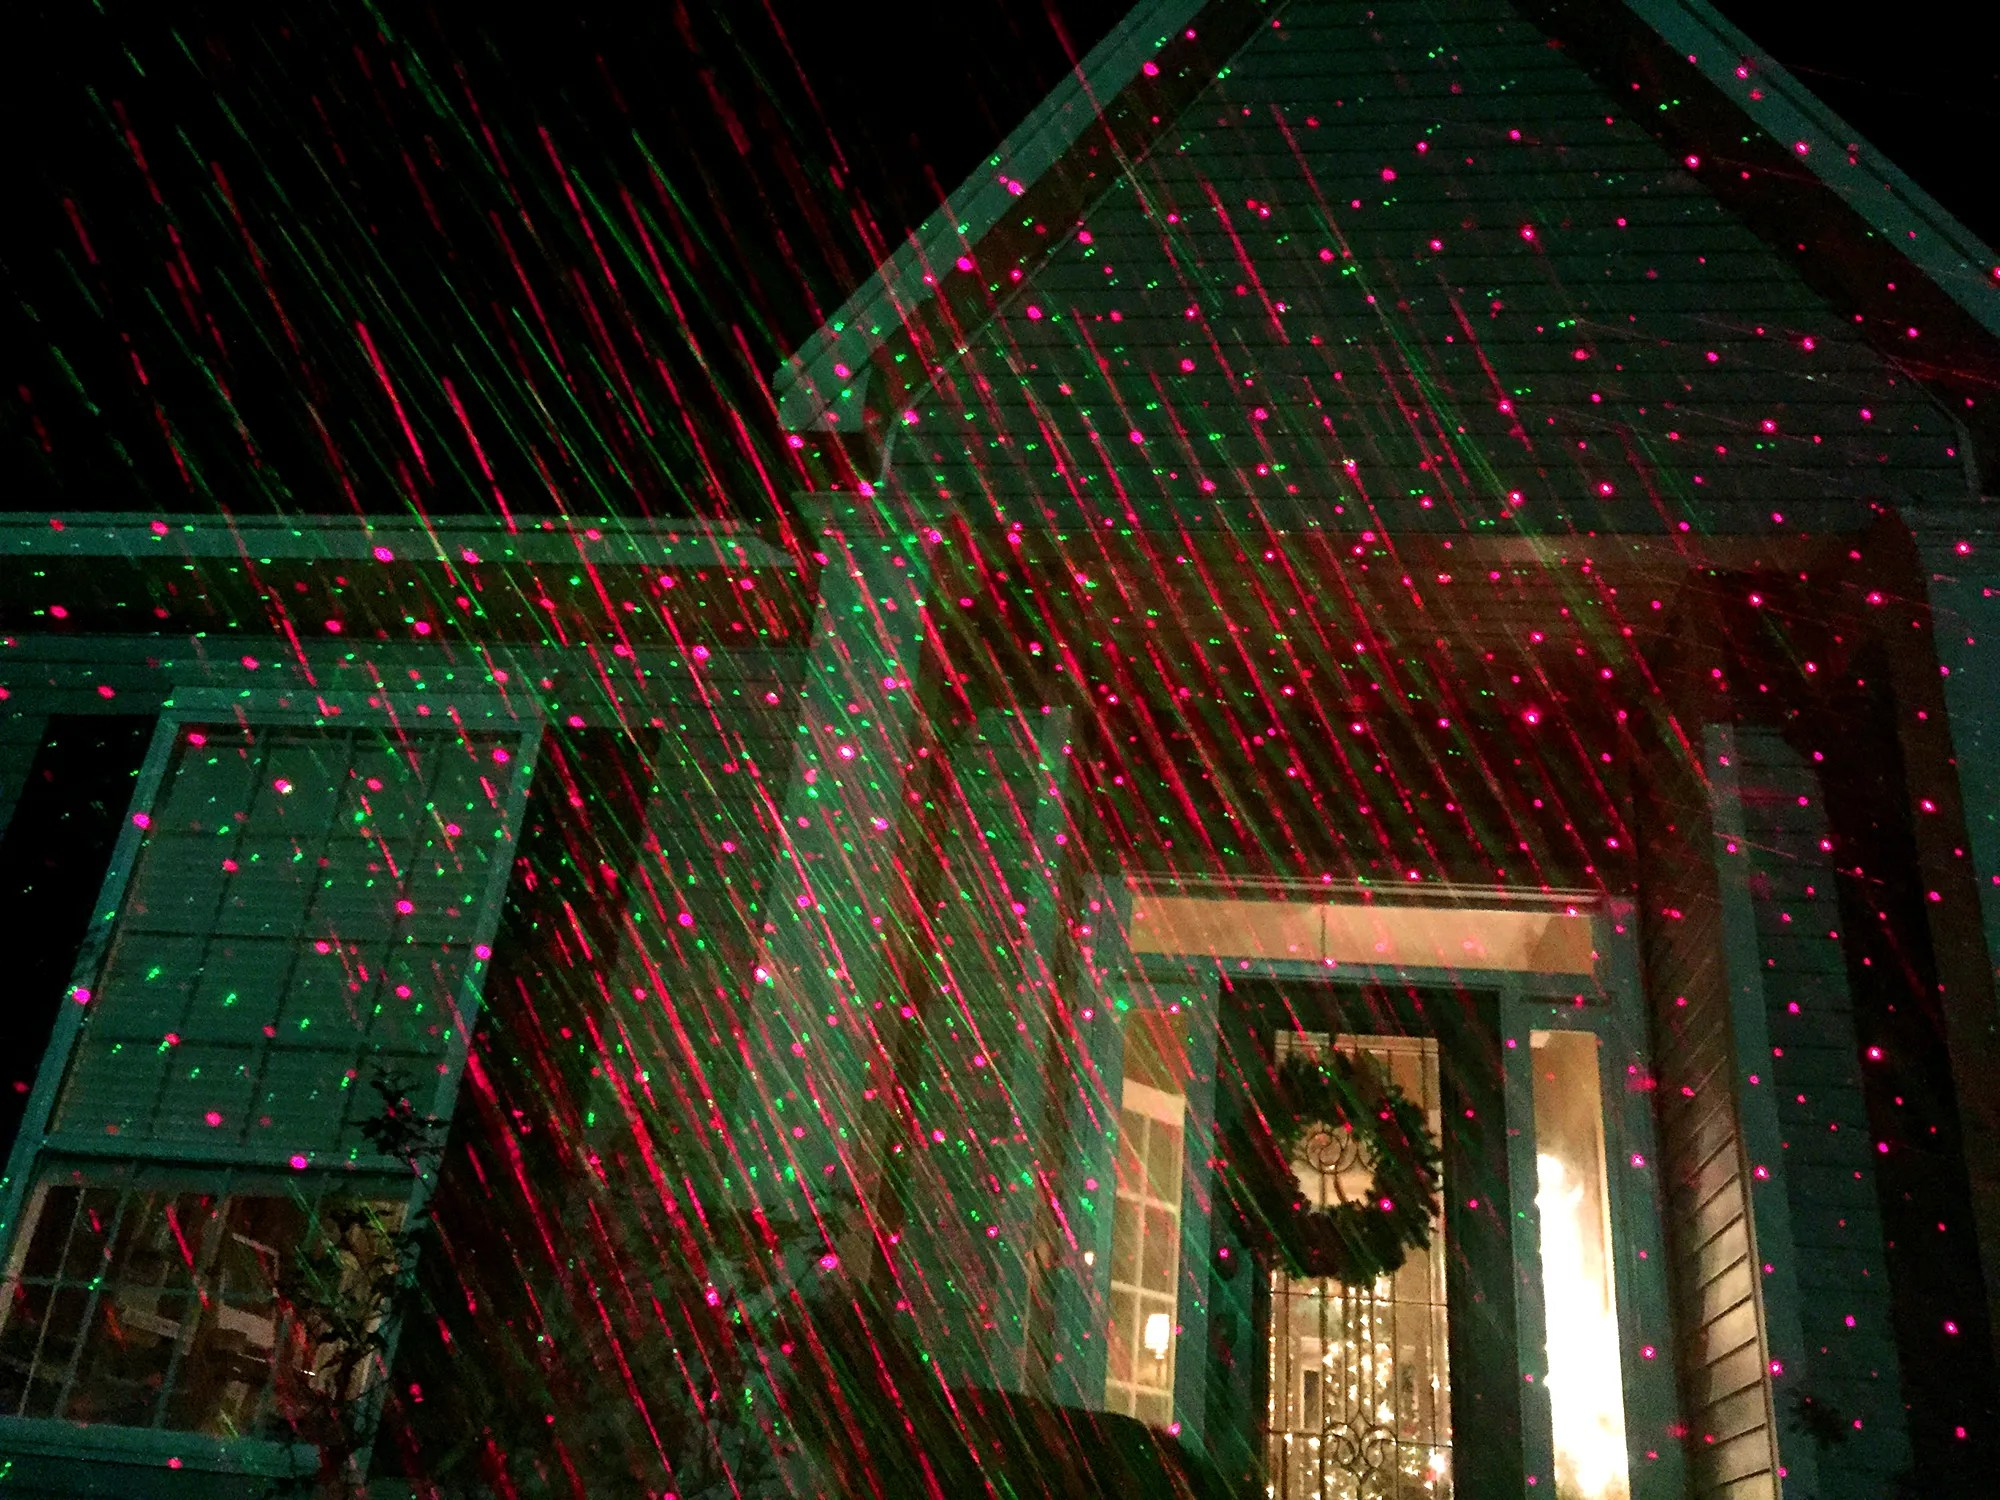 hight resolution of forget christmas lights fire lasers at your house instead